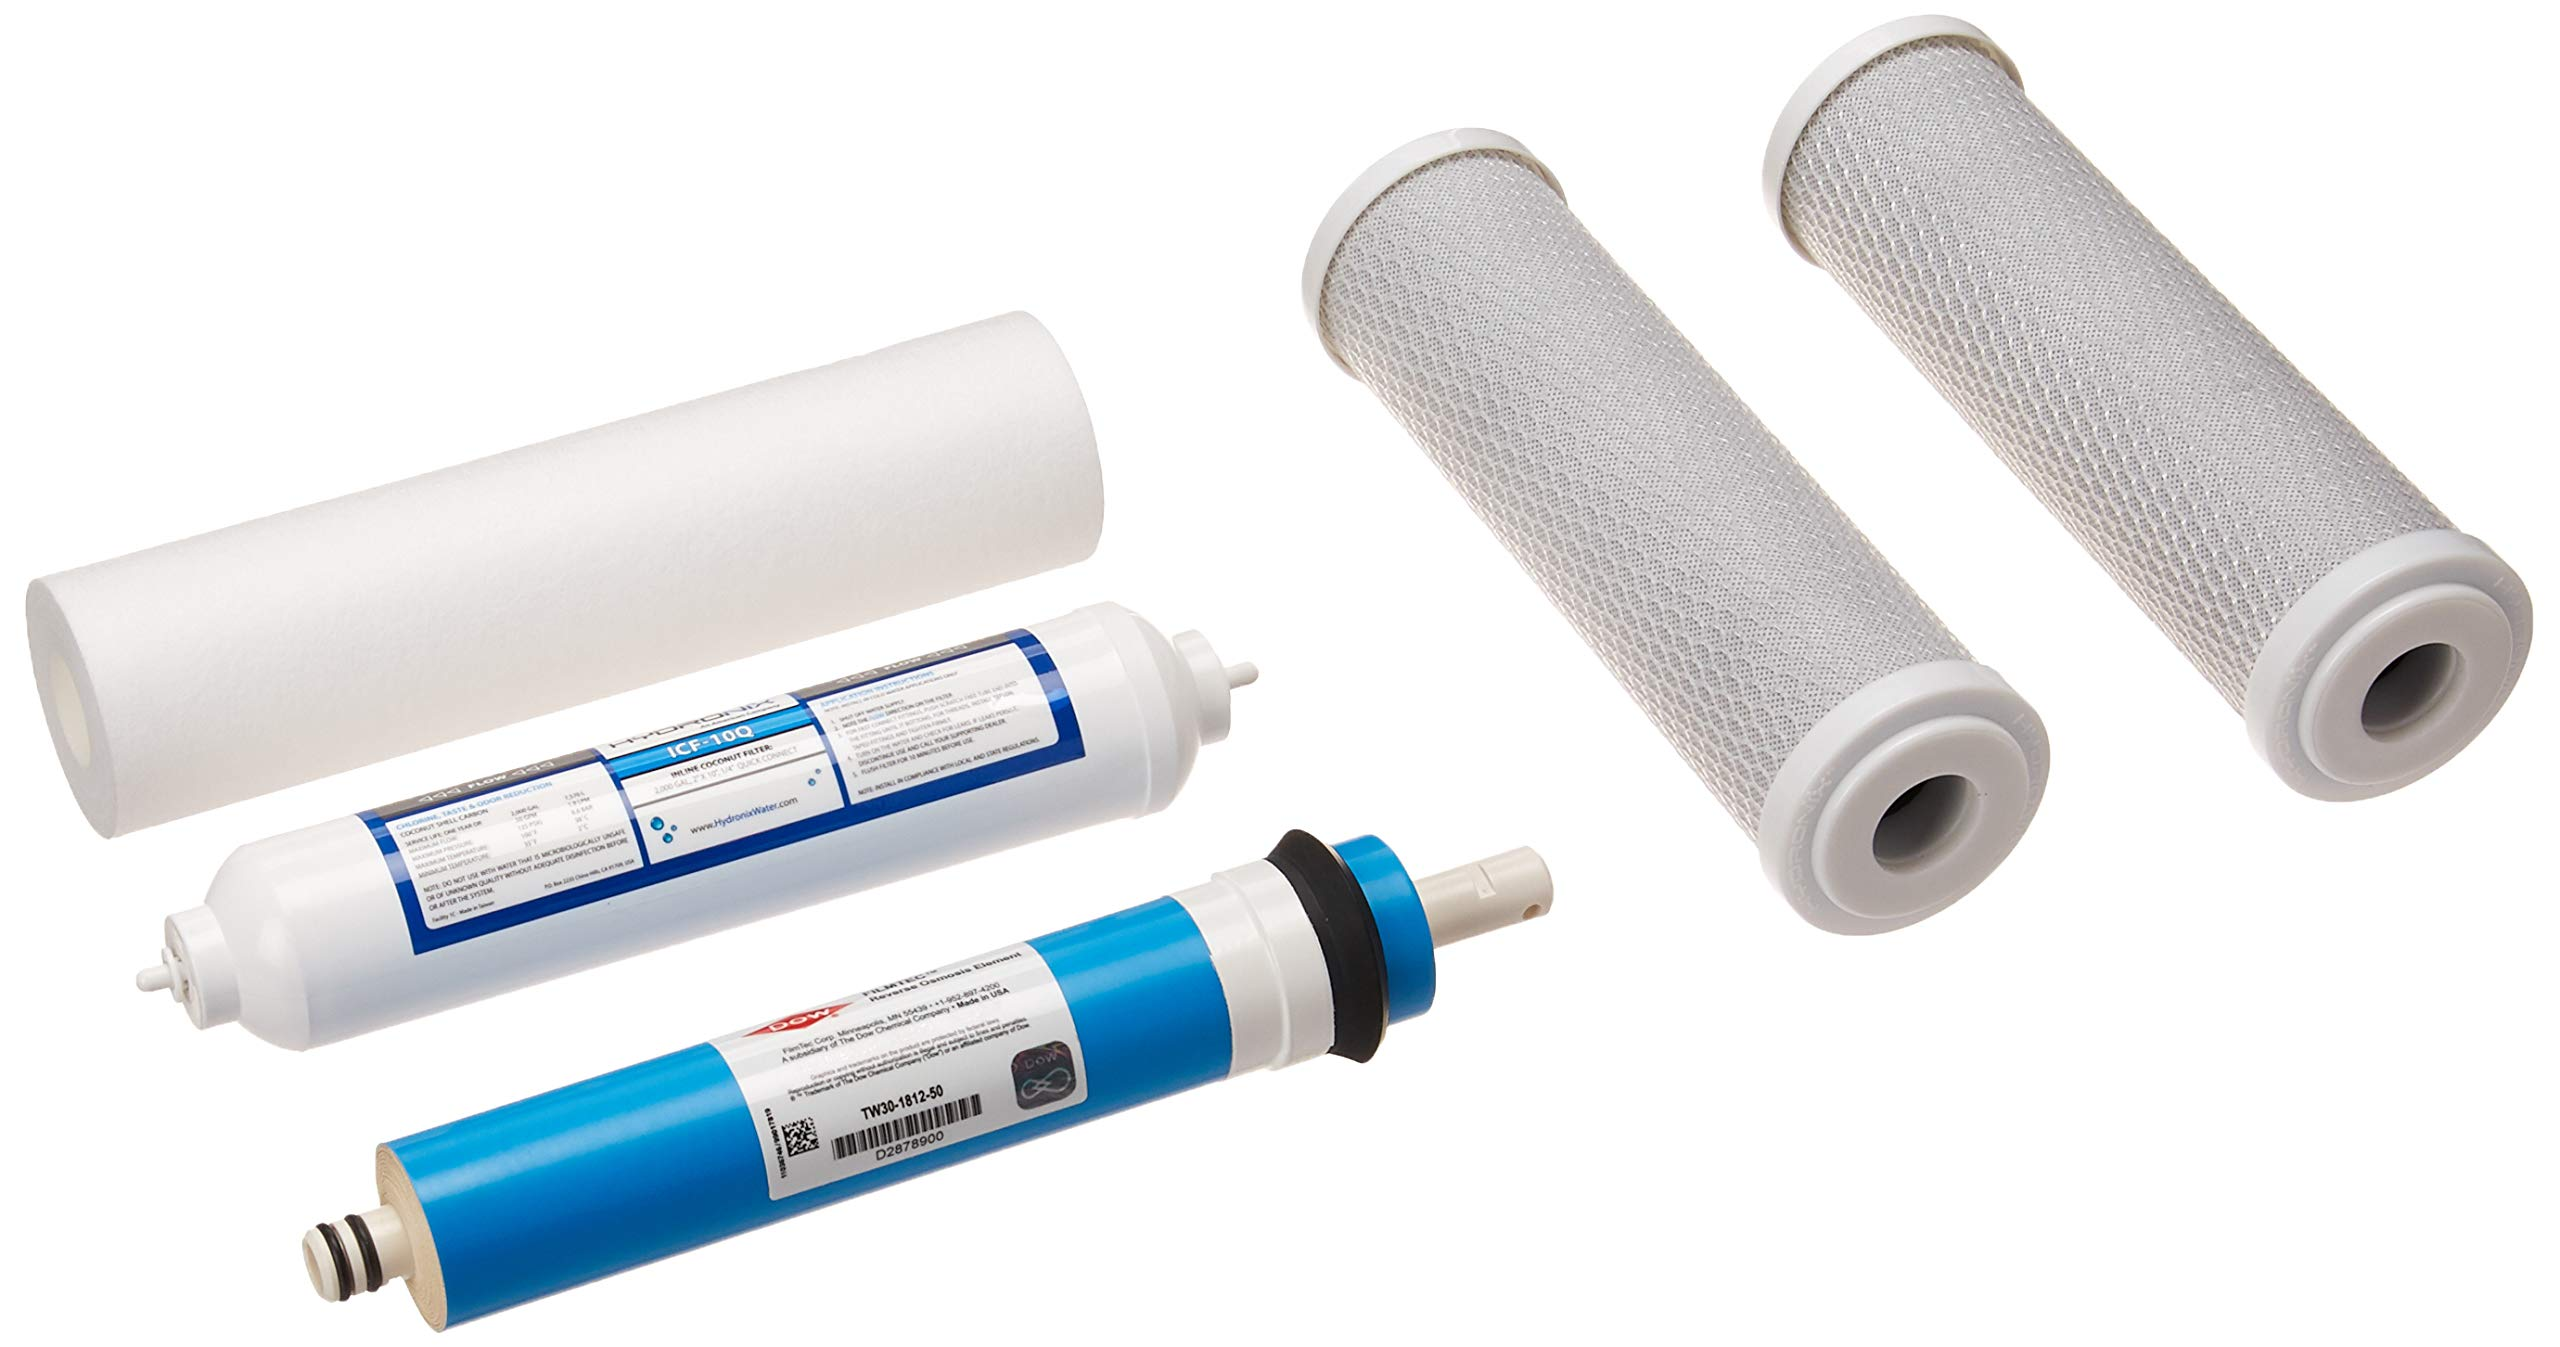 TW30-2514 14 x 2.5 Dow Filmtec 170 GPD TW30-2514 Commercial Reverse Osmosis Membrane for Tap Water Model